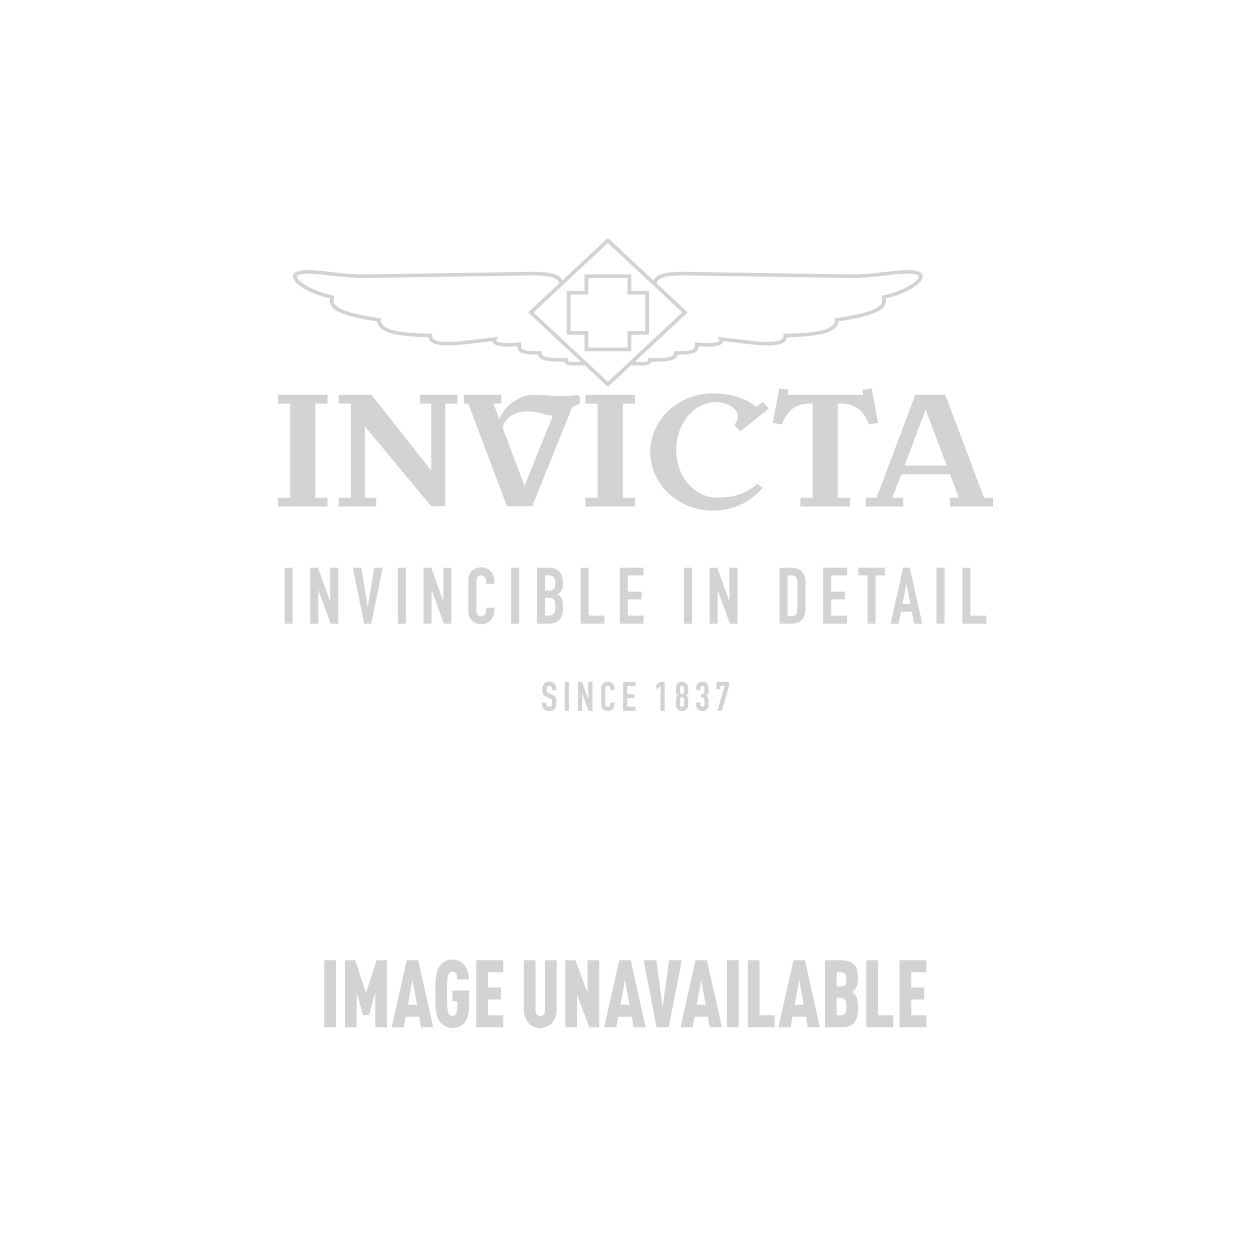 Invicta Aviator watch in Stainless Steel - Watch Model 18780 123587192